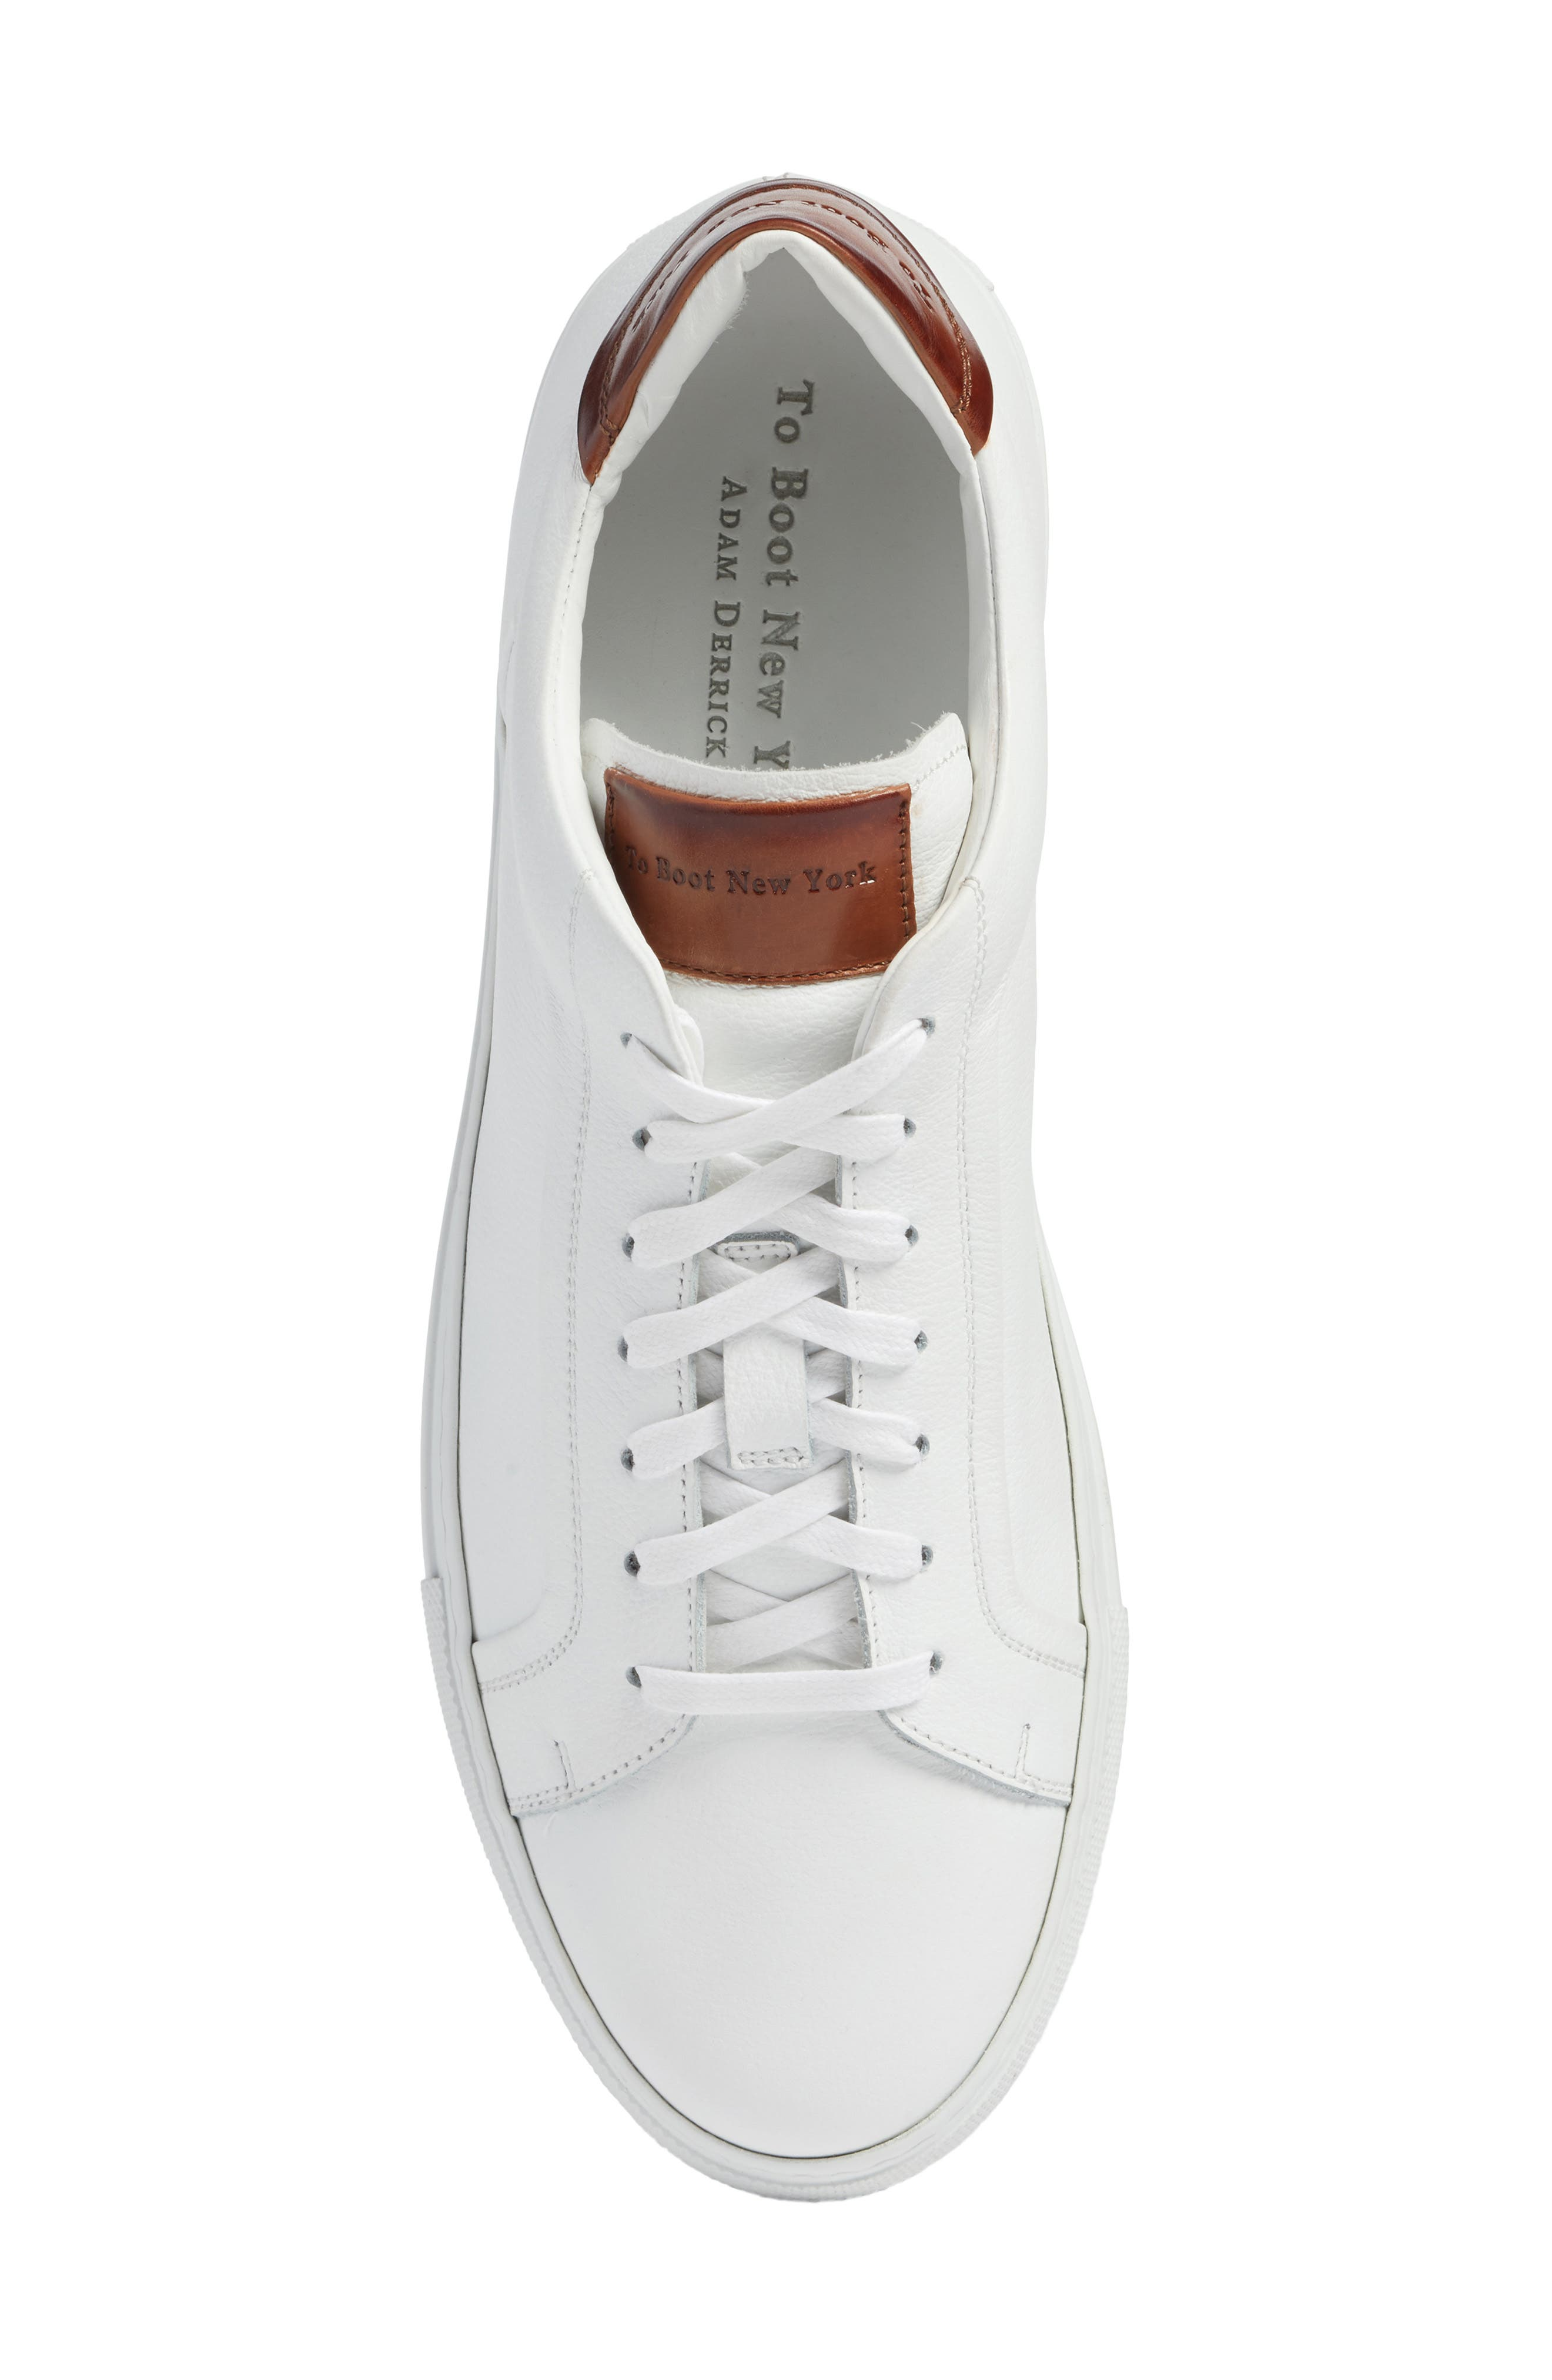 Carlin Sneaker,                             Alternate thumbnail 5, color,                             White/ Tan Leather